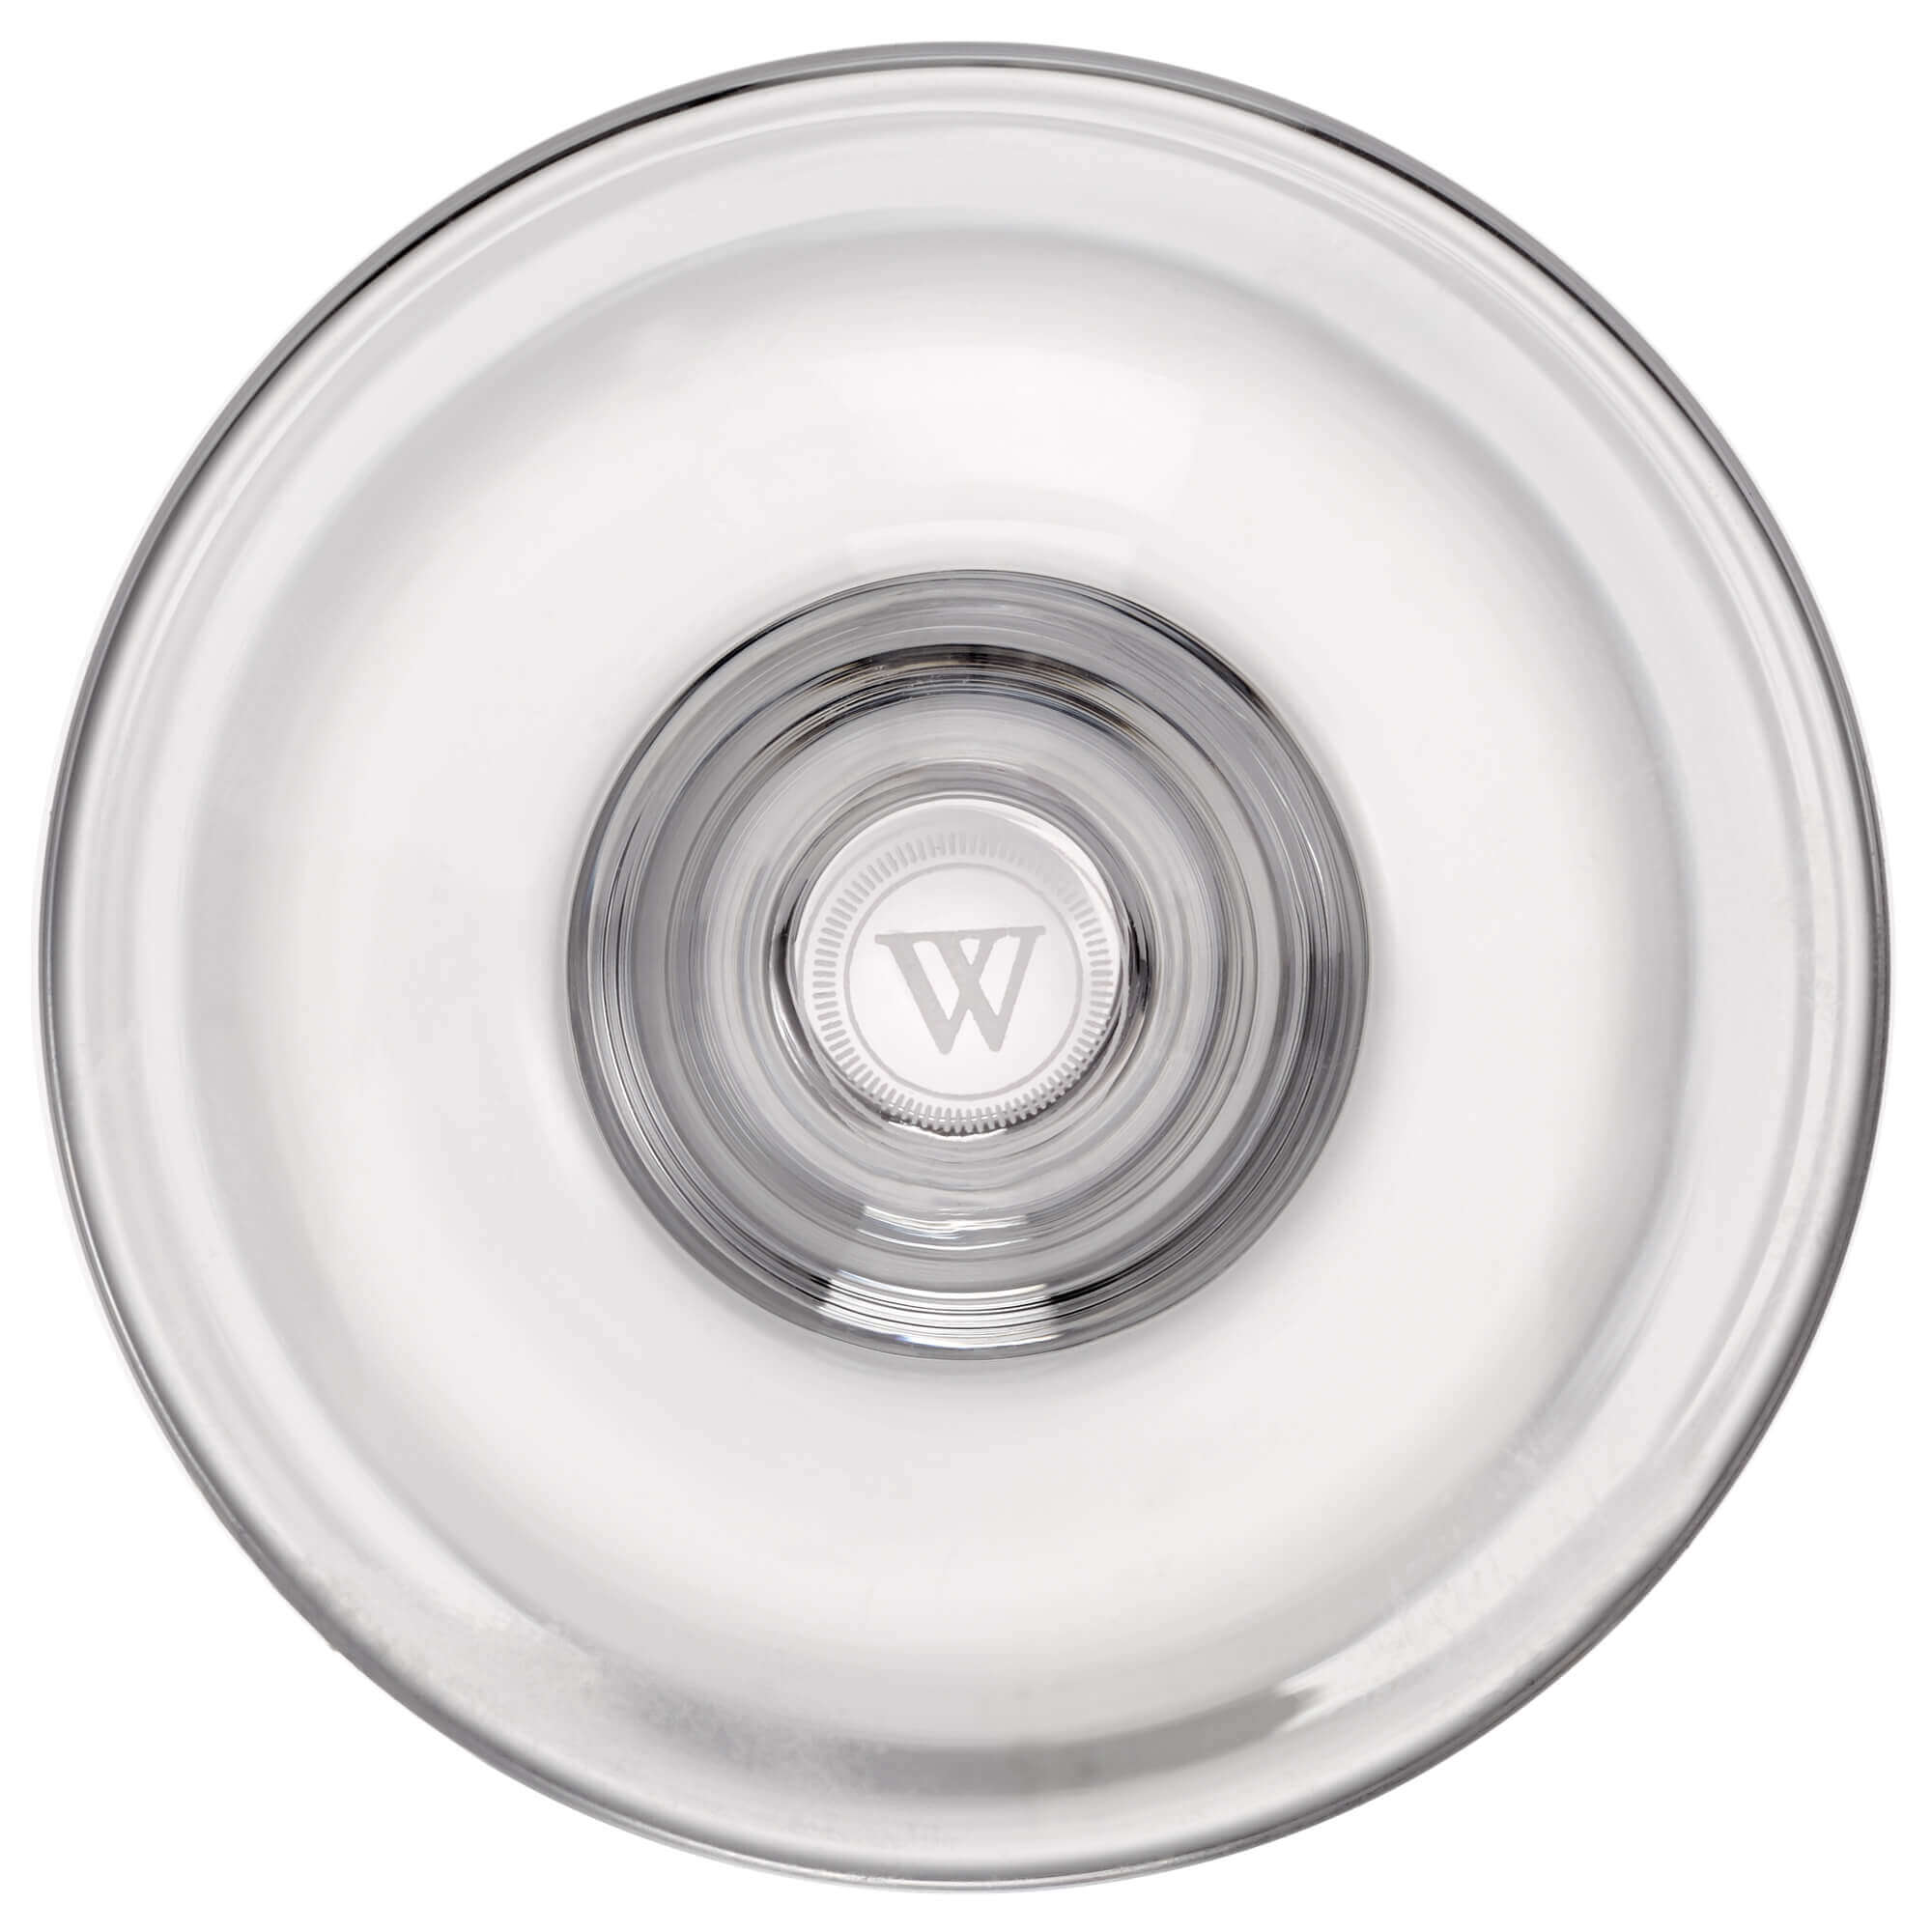 The Wolseley engraved glass